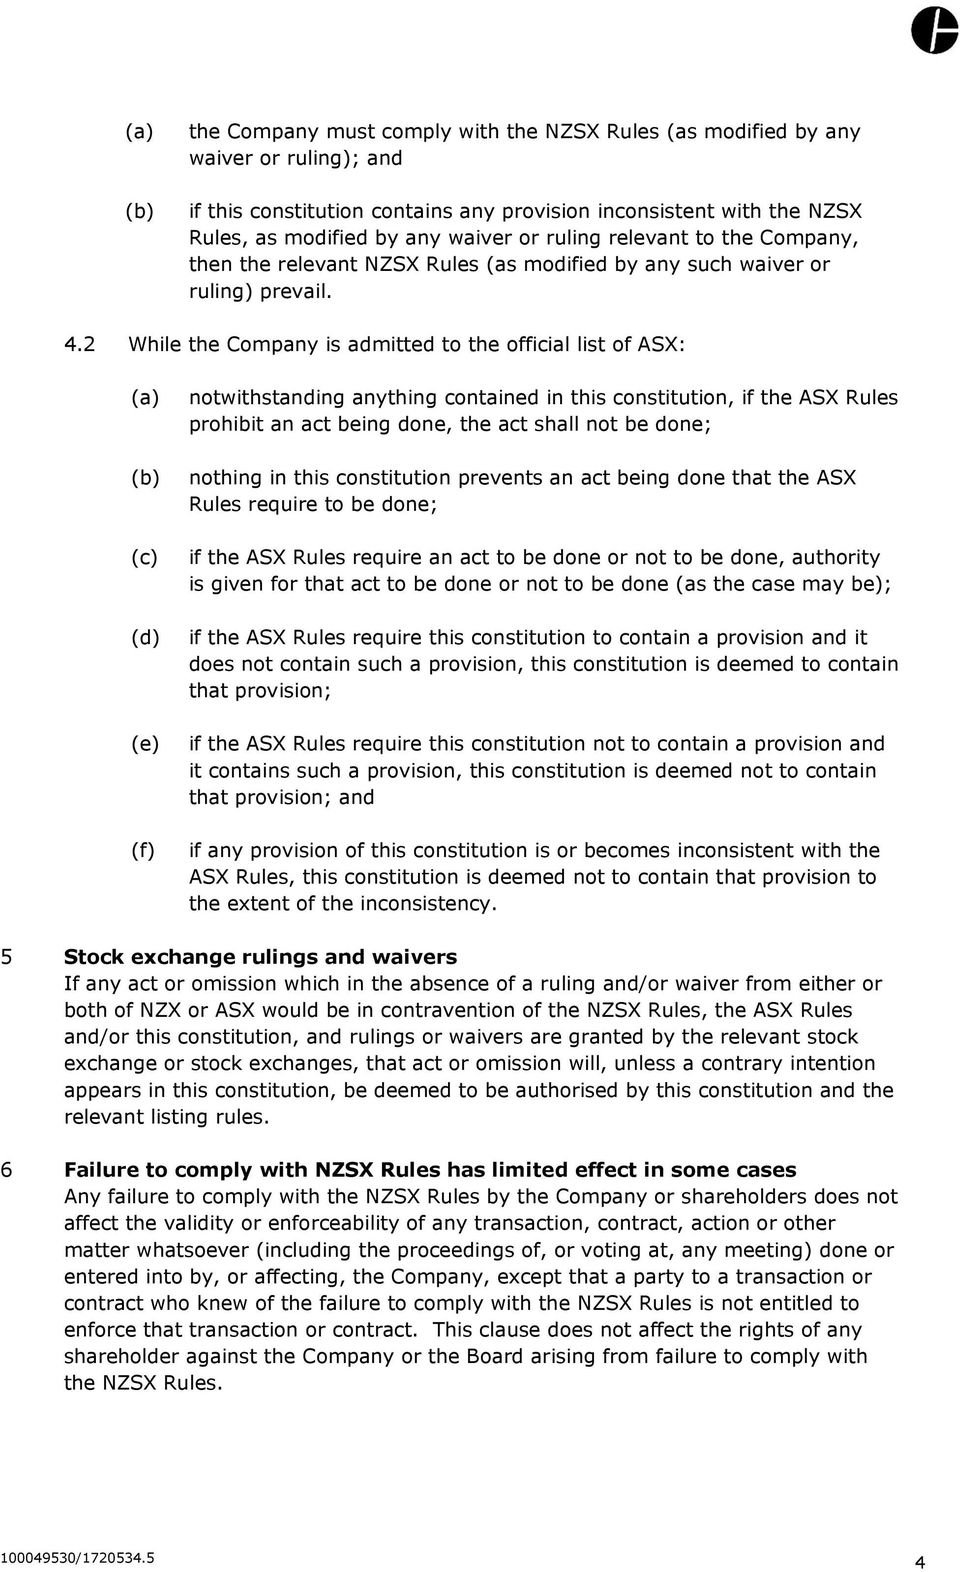 2 While the Company is admitted to the official list of ASX: (a) (b) (c) (d) (e) (f) notwithstanding anything contained in this constitution, if the ASX Rules prohibit an act being done, the act